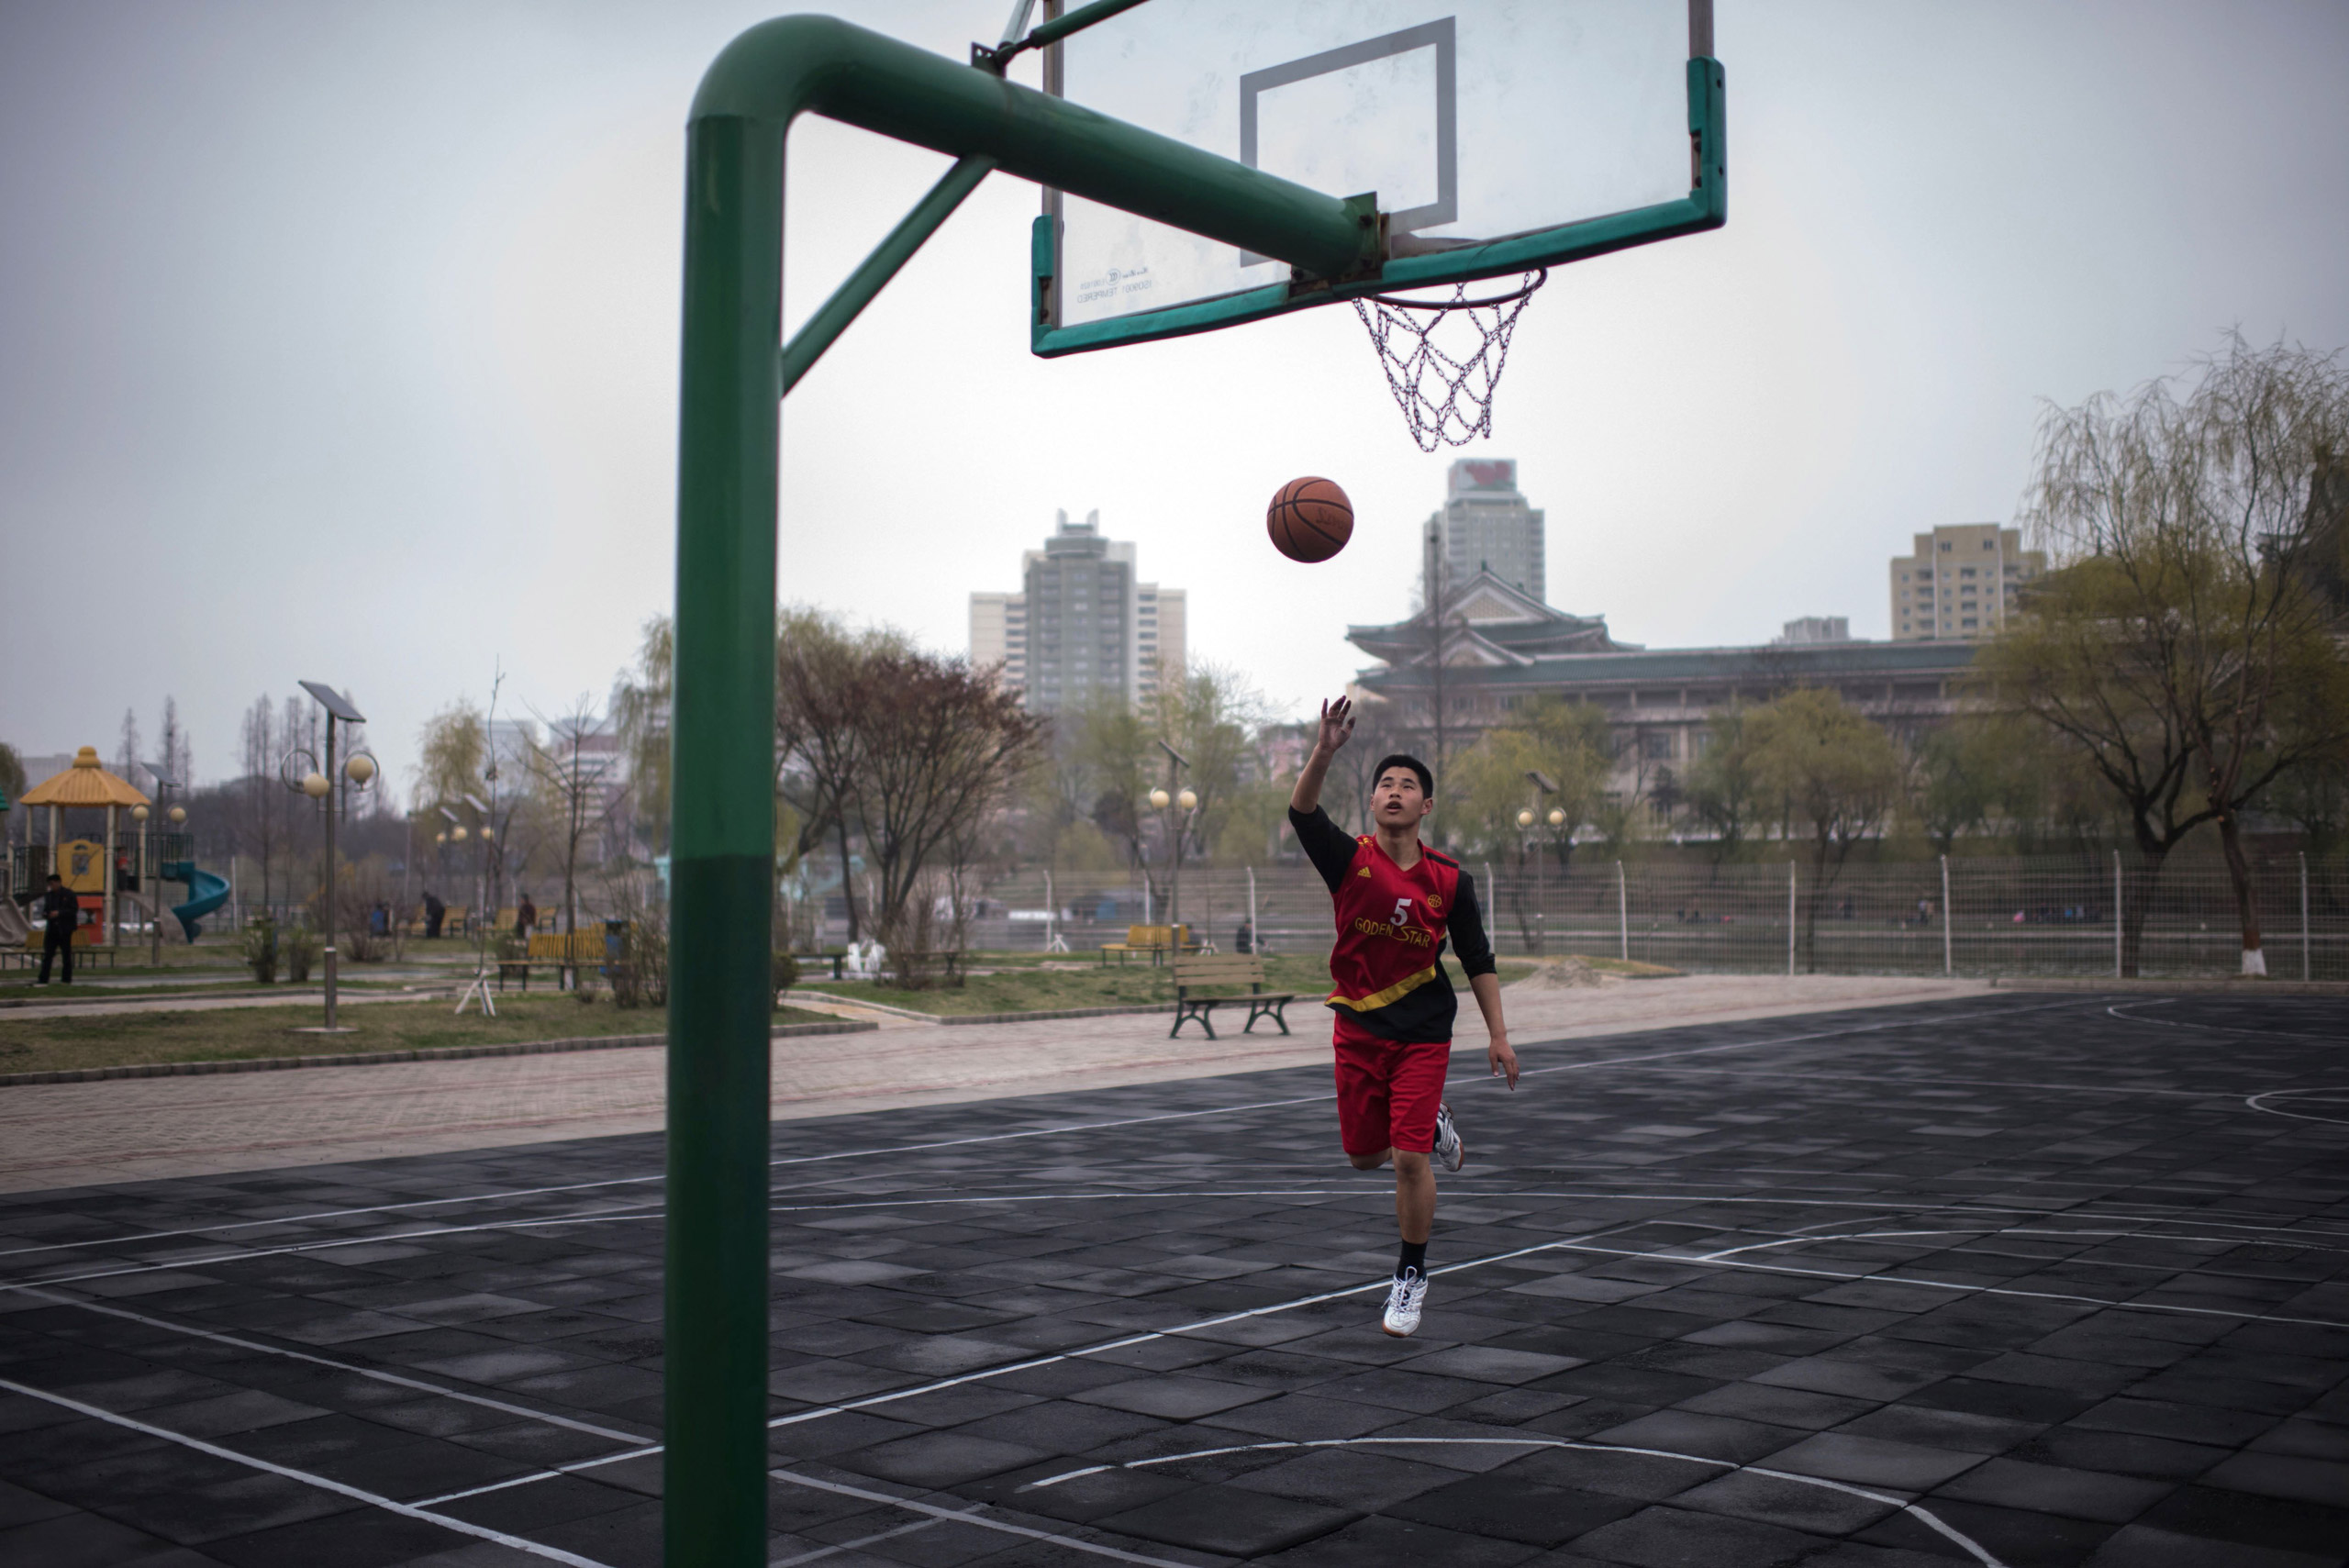 A basketball player takes a shot at the basket as he practices on a court in Pyongyang on April 8, 2017.